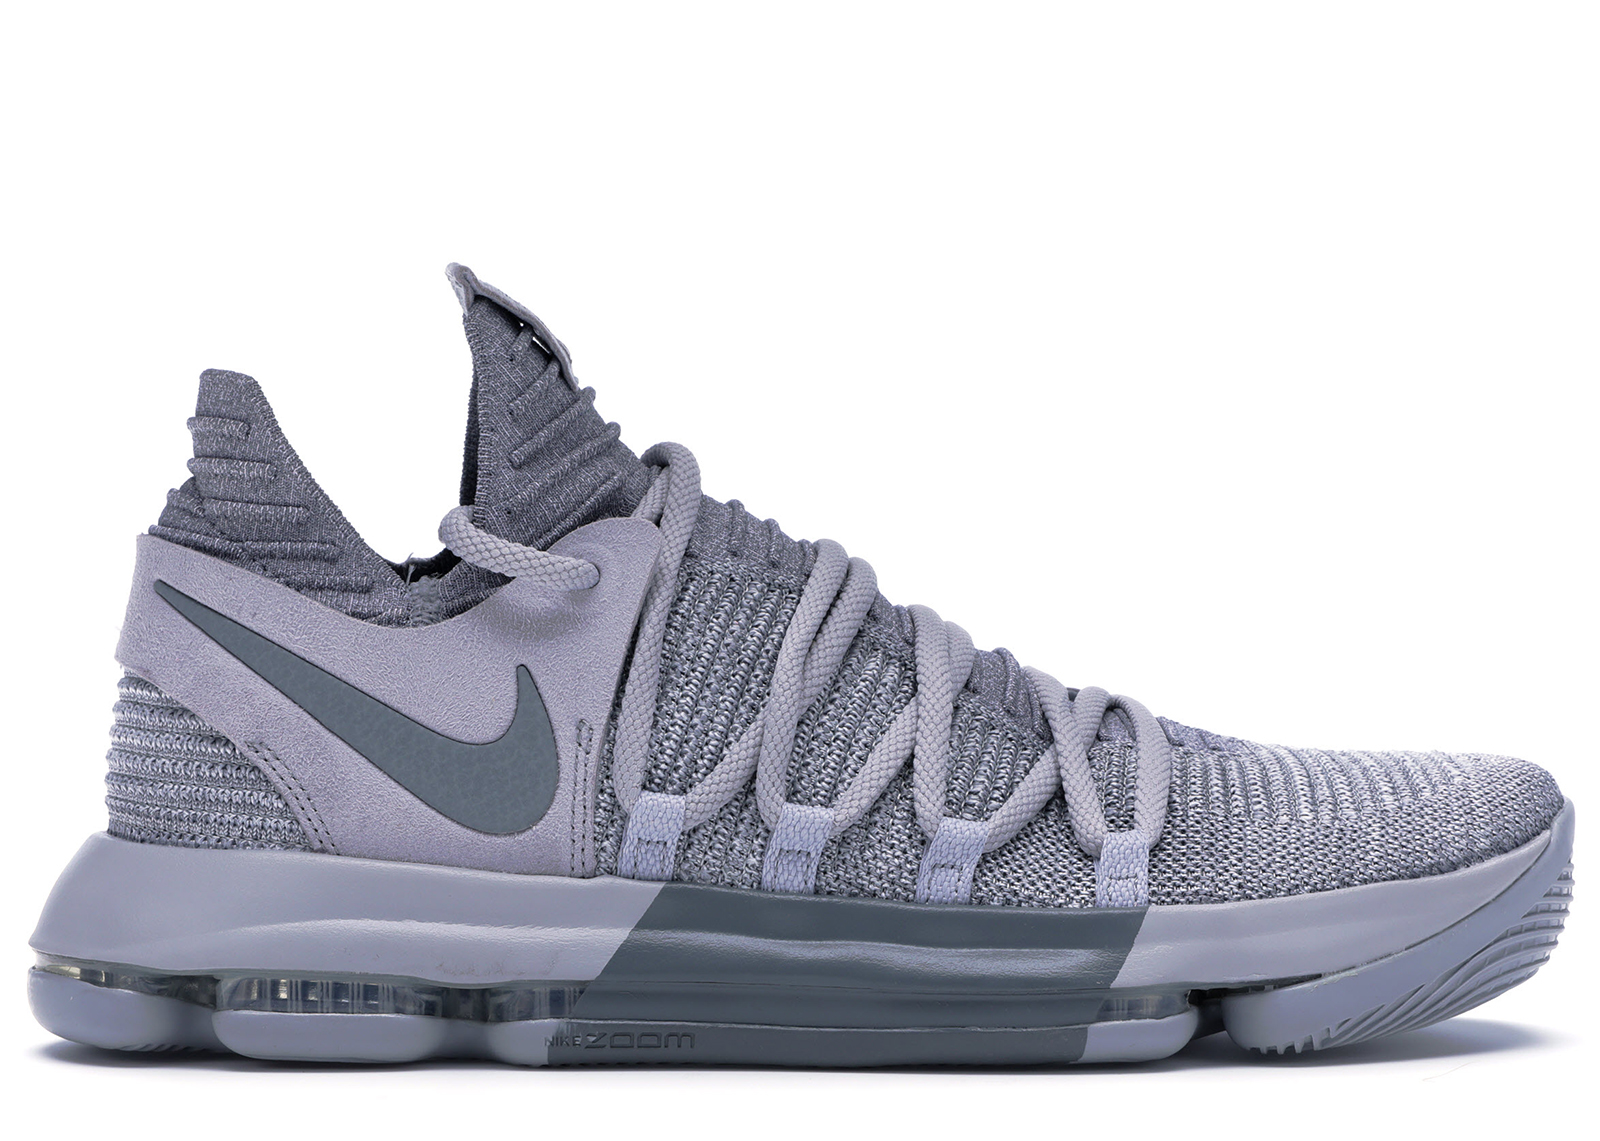 kd 10 grey wolf Kevin Durant shoes on sale